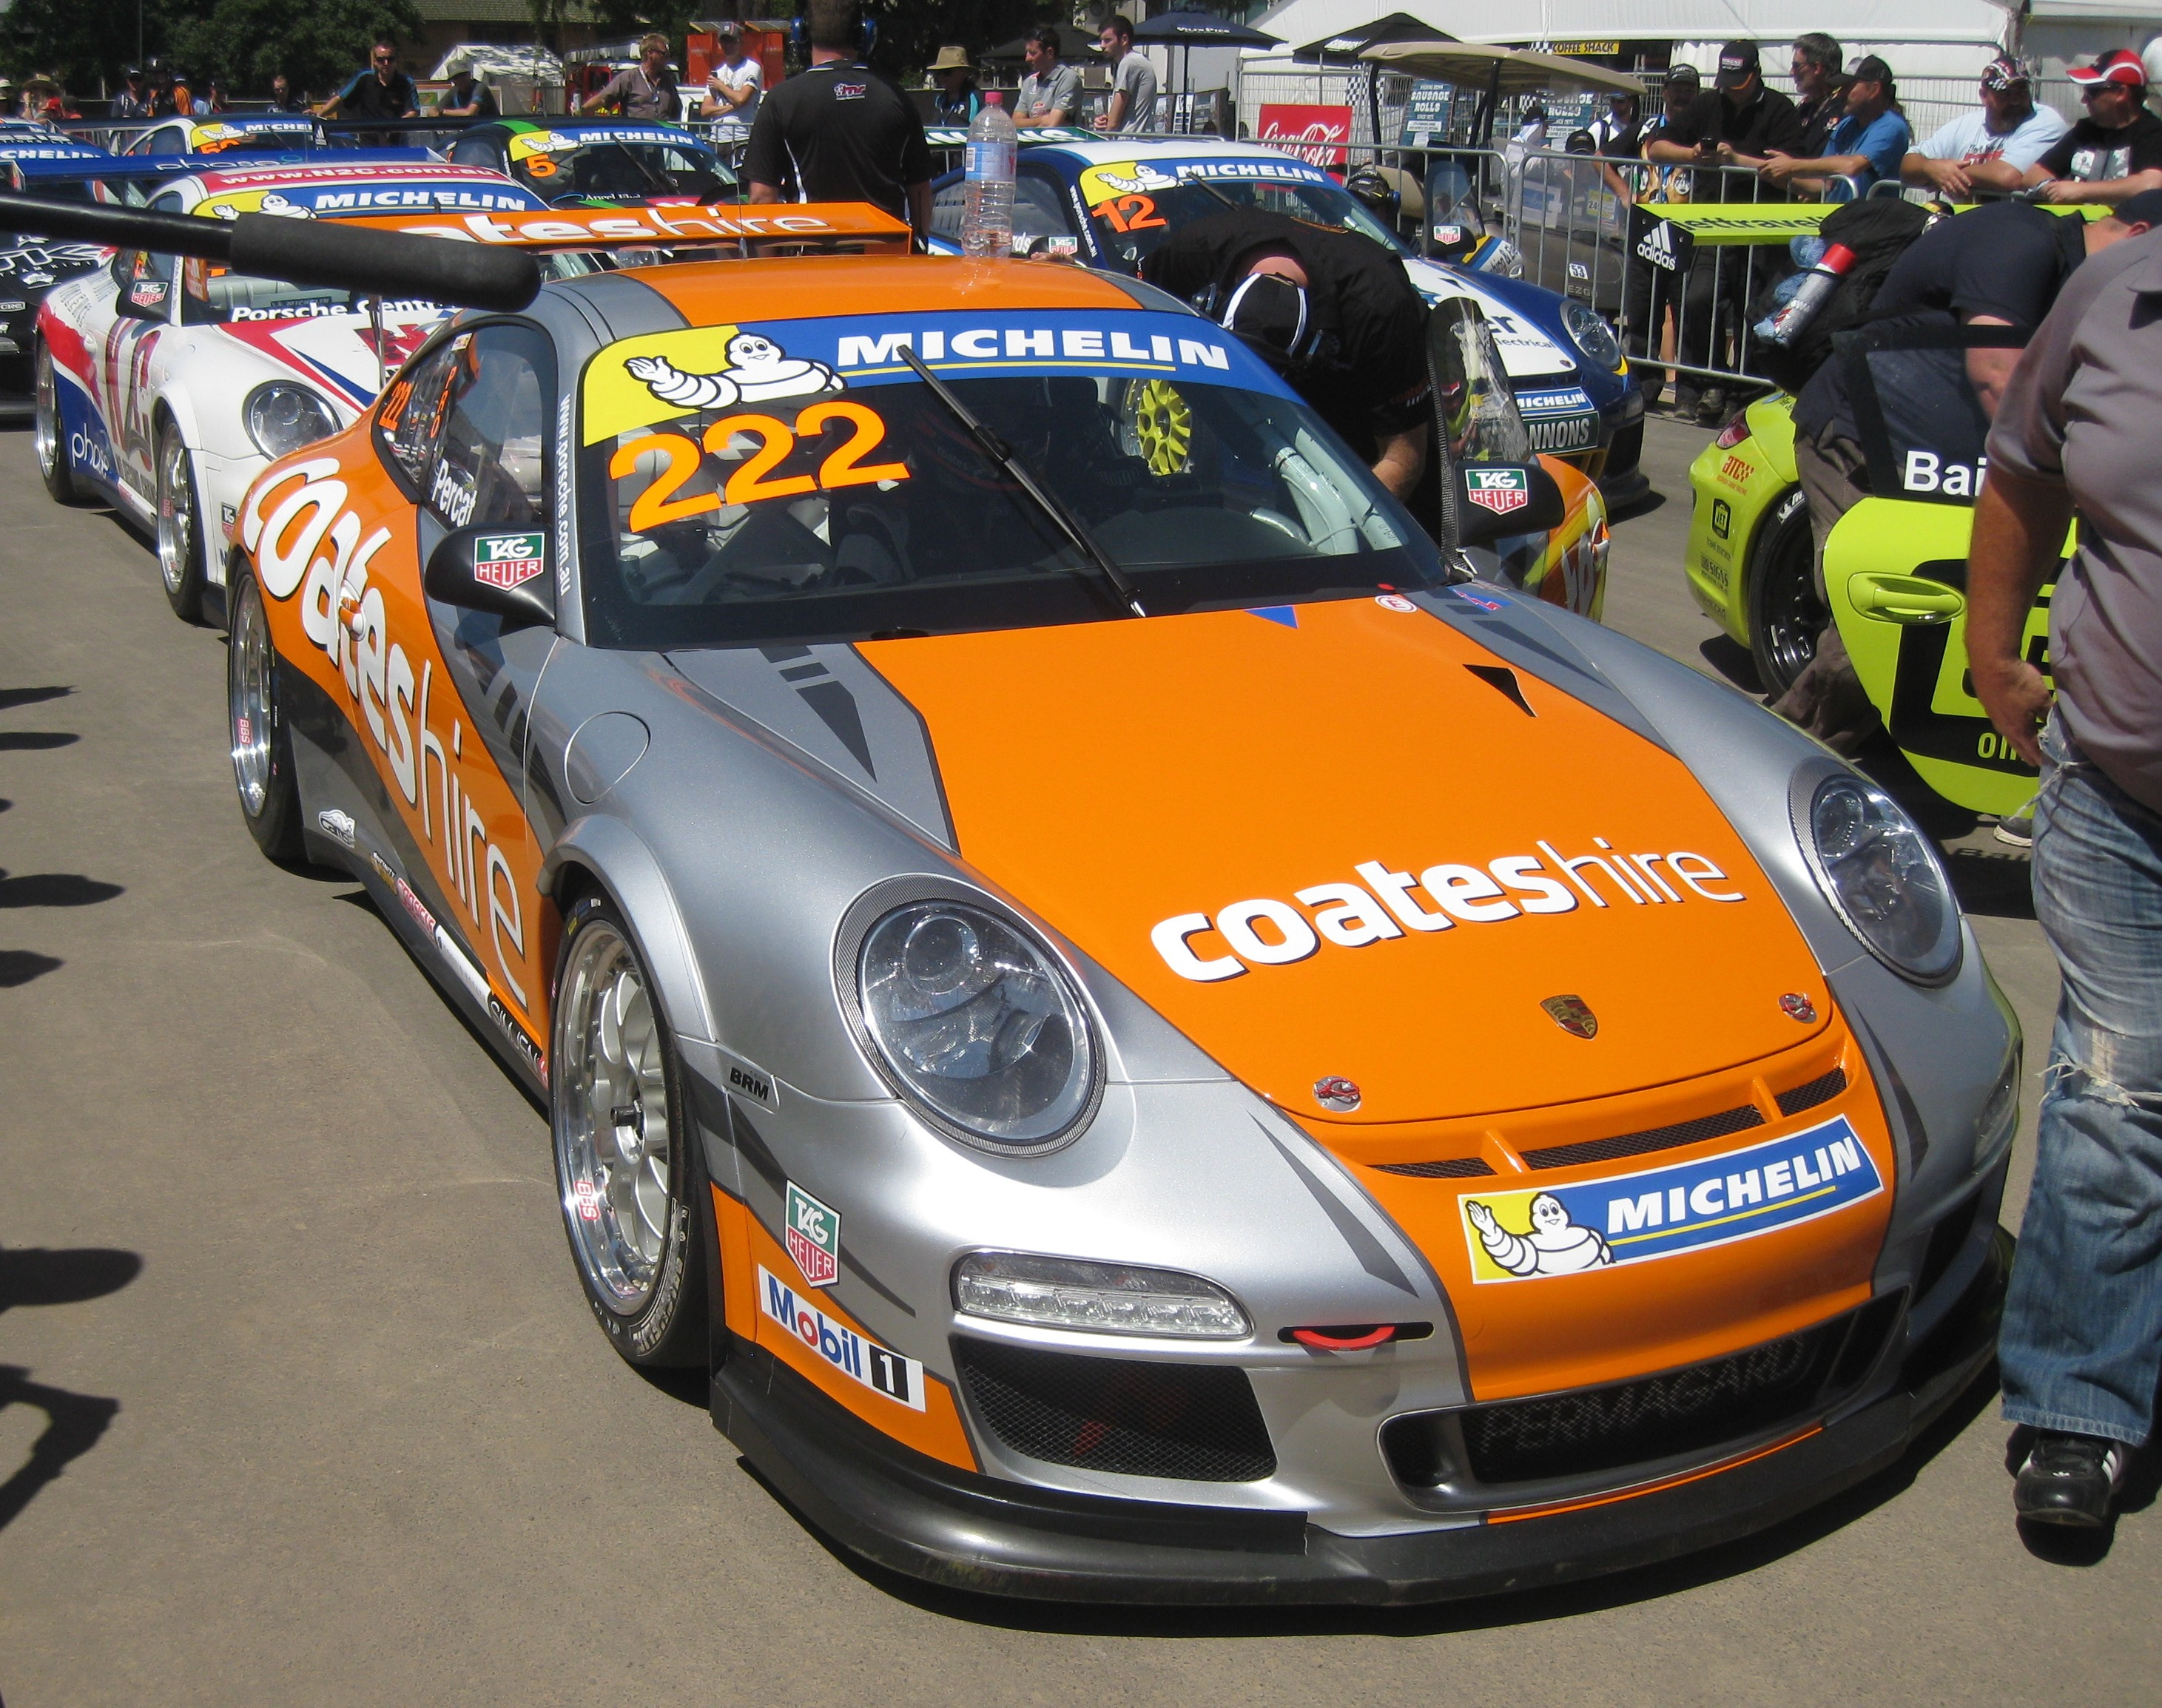 file porsche 911 gt3 cup type 997 of nick percat 2013 jpg wikimedia commons. Black Bedroom Furniture Sets. Home Design Ideas